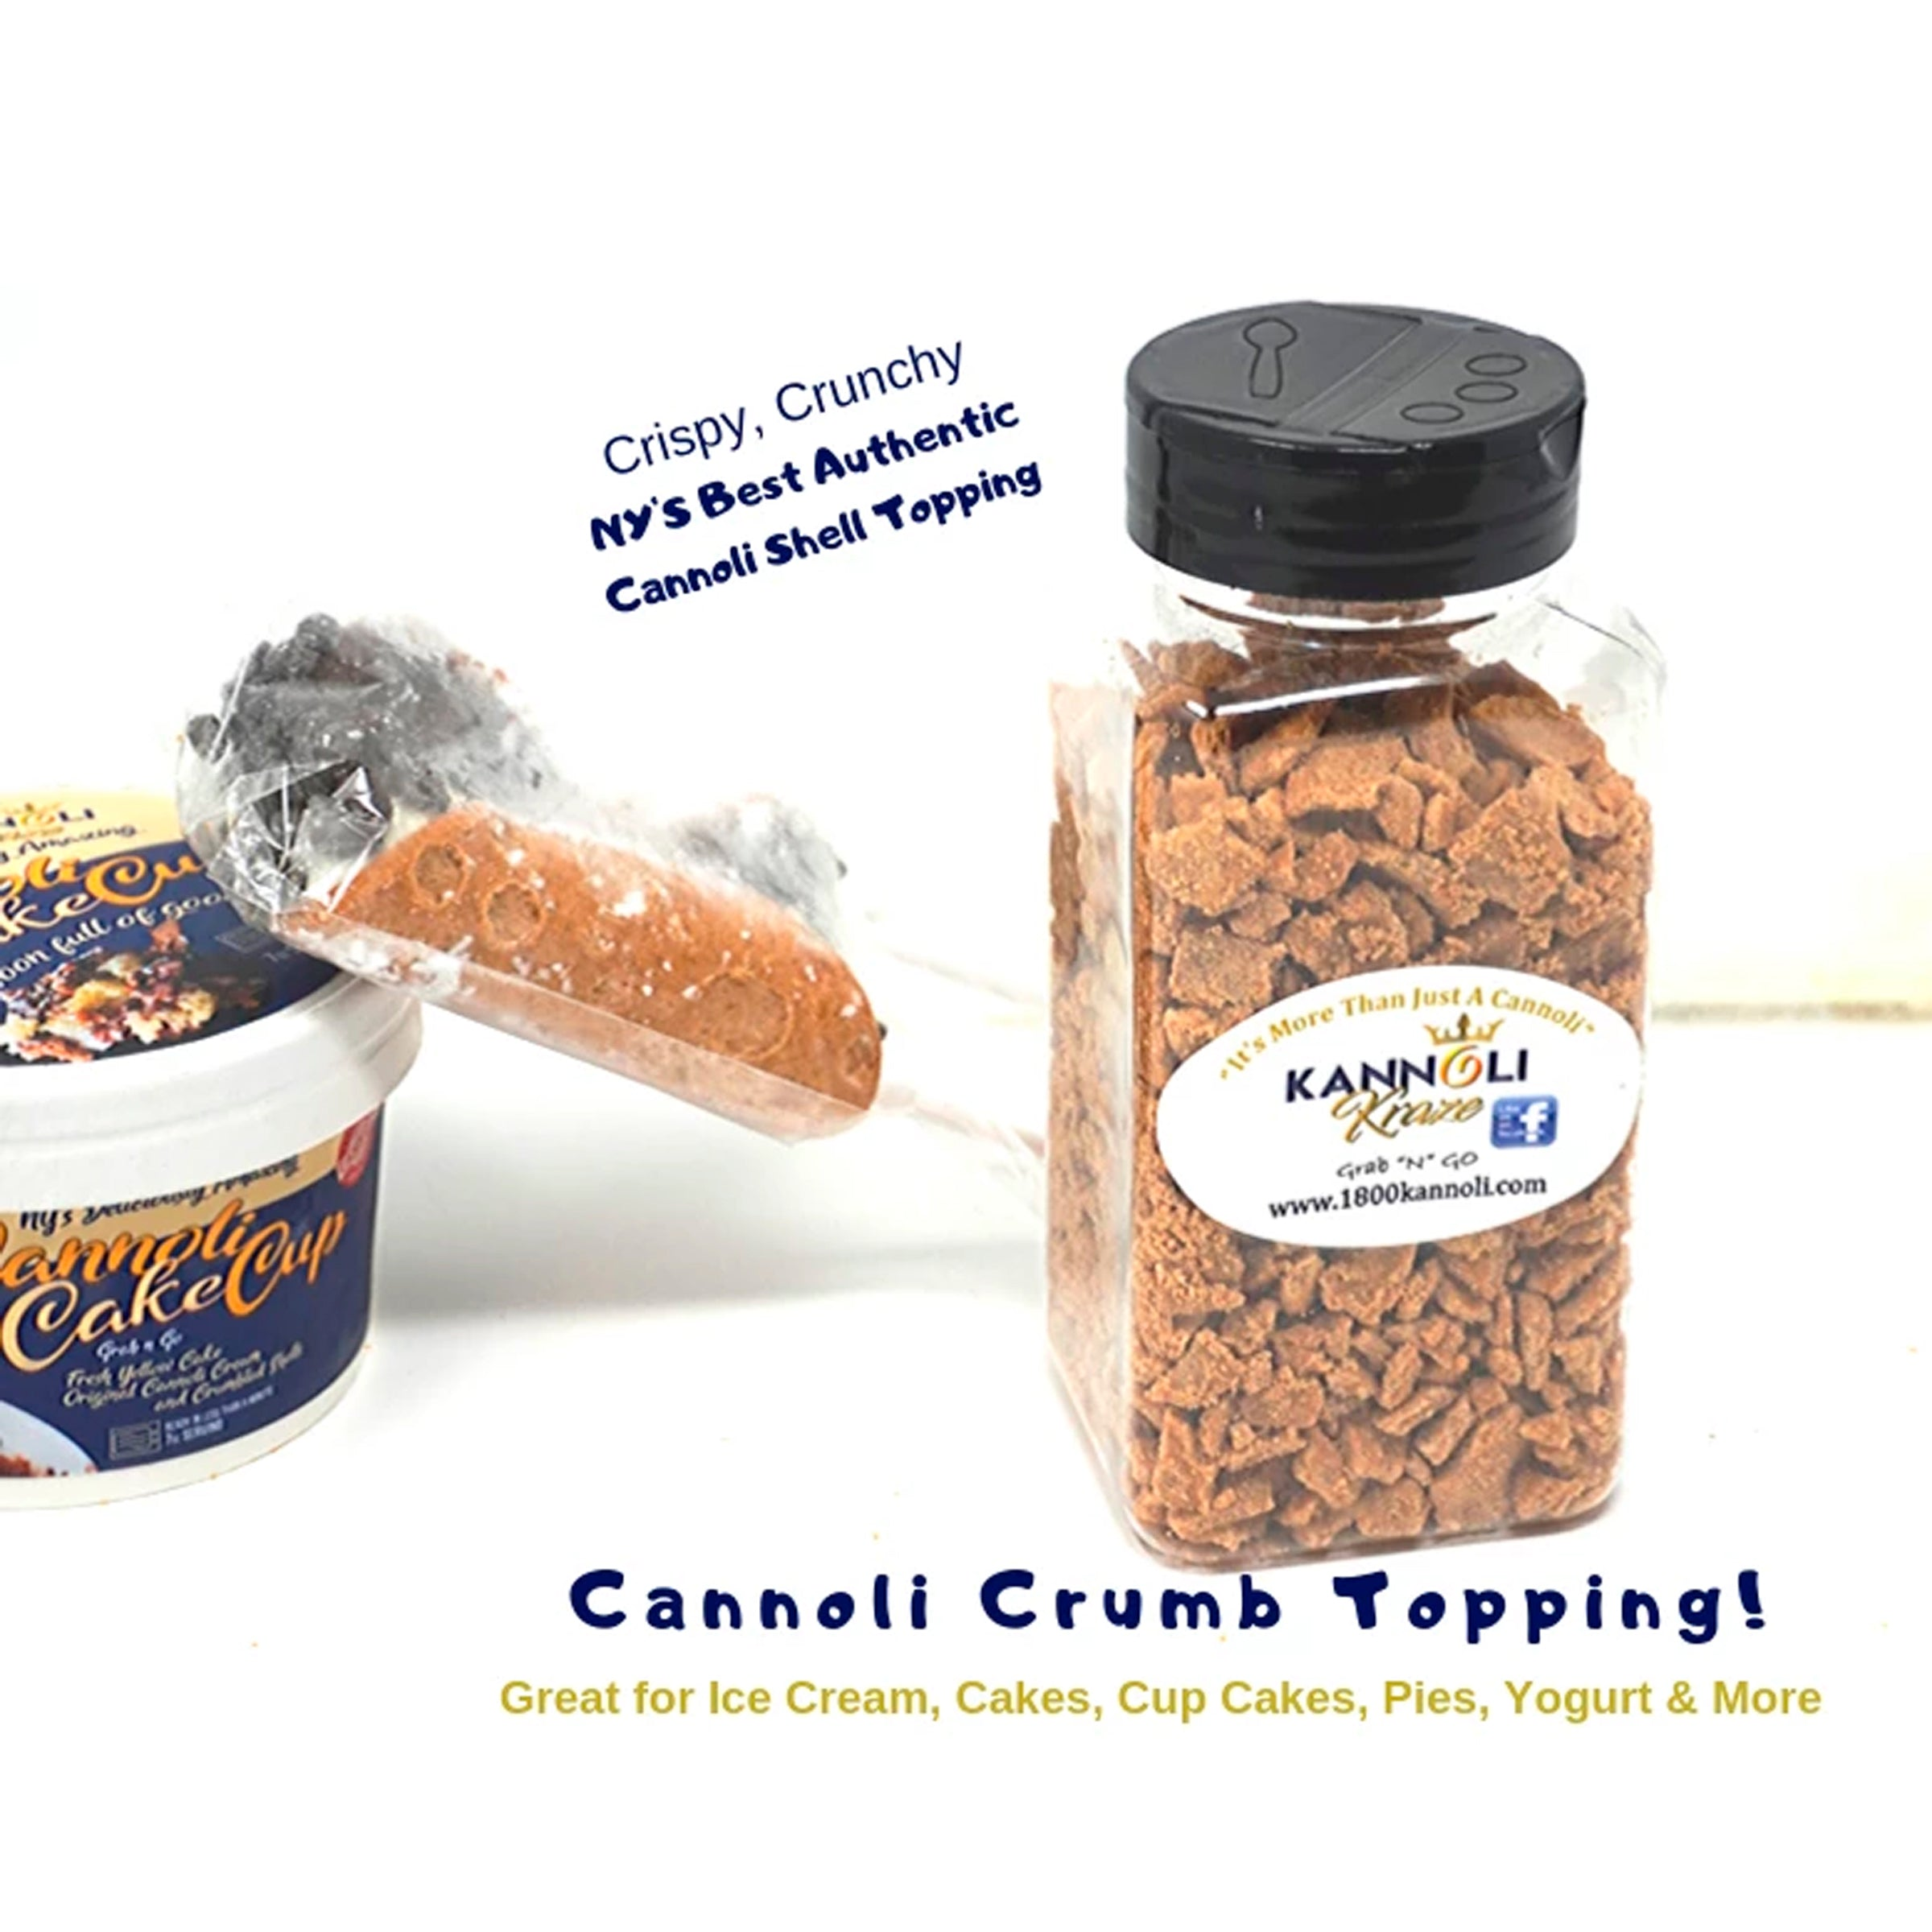 Cannoli Shell Crumbs Topping